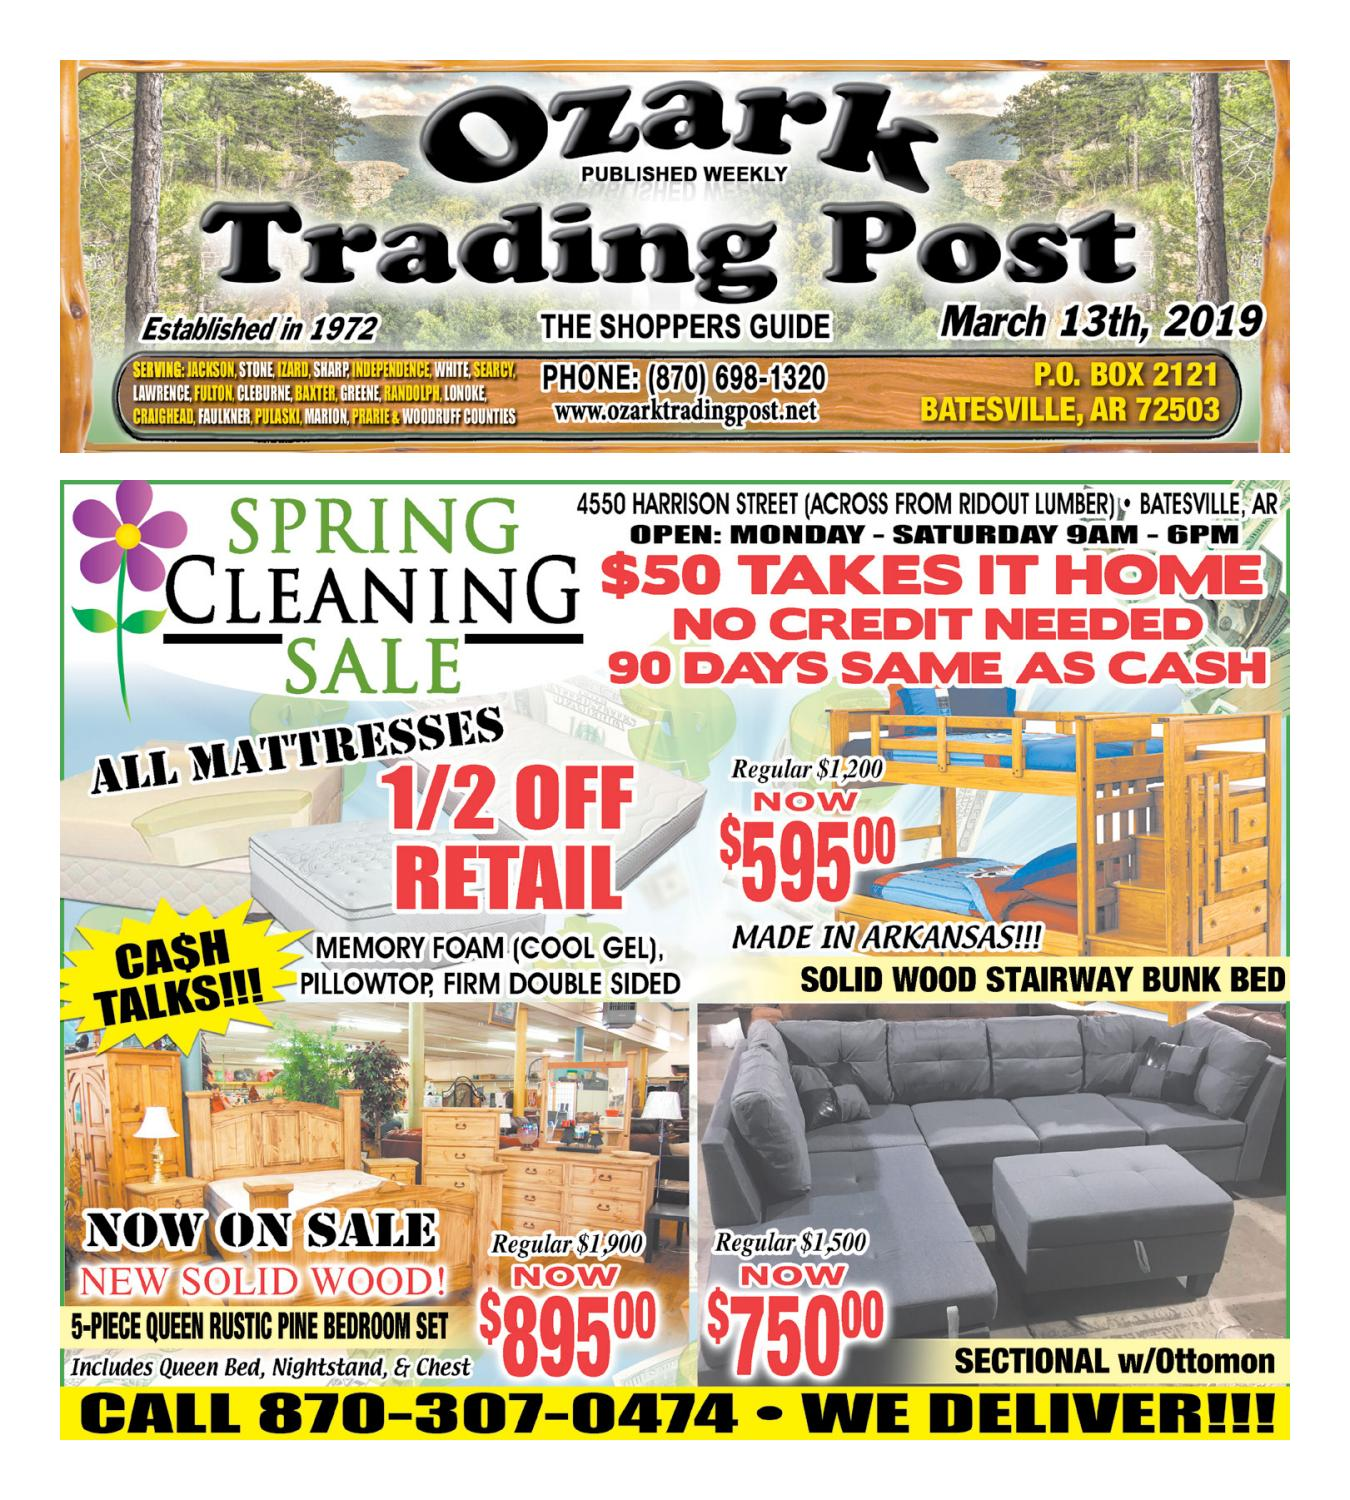 Surprising Ozark Trading Post March 13Th 2019 By Ozark Trading Post Caraccident5 Cool Chair Designs And Ideas Caraccident5Info